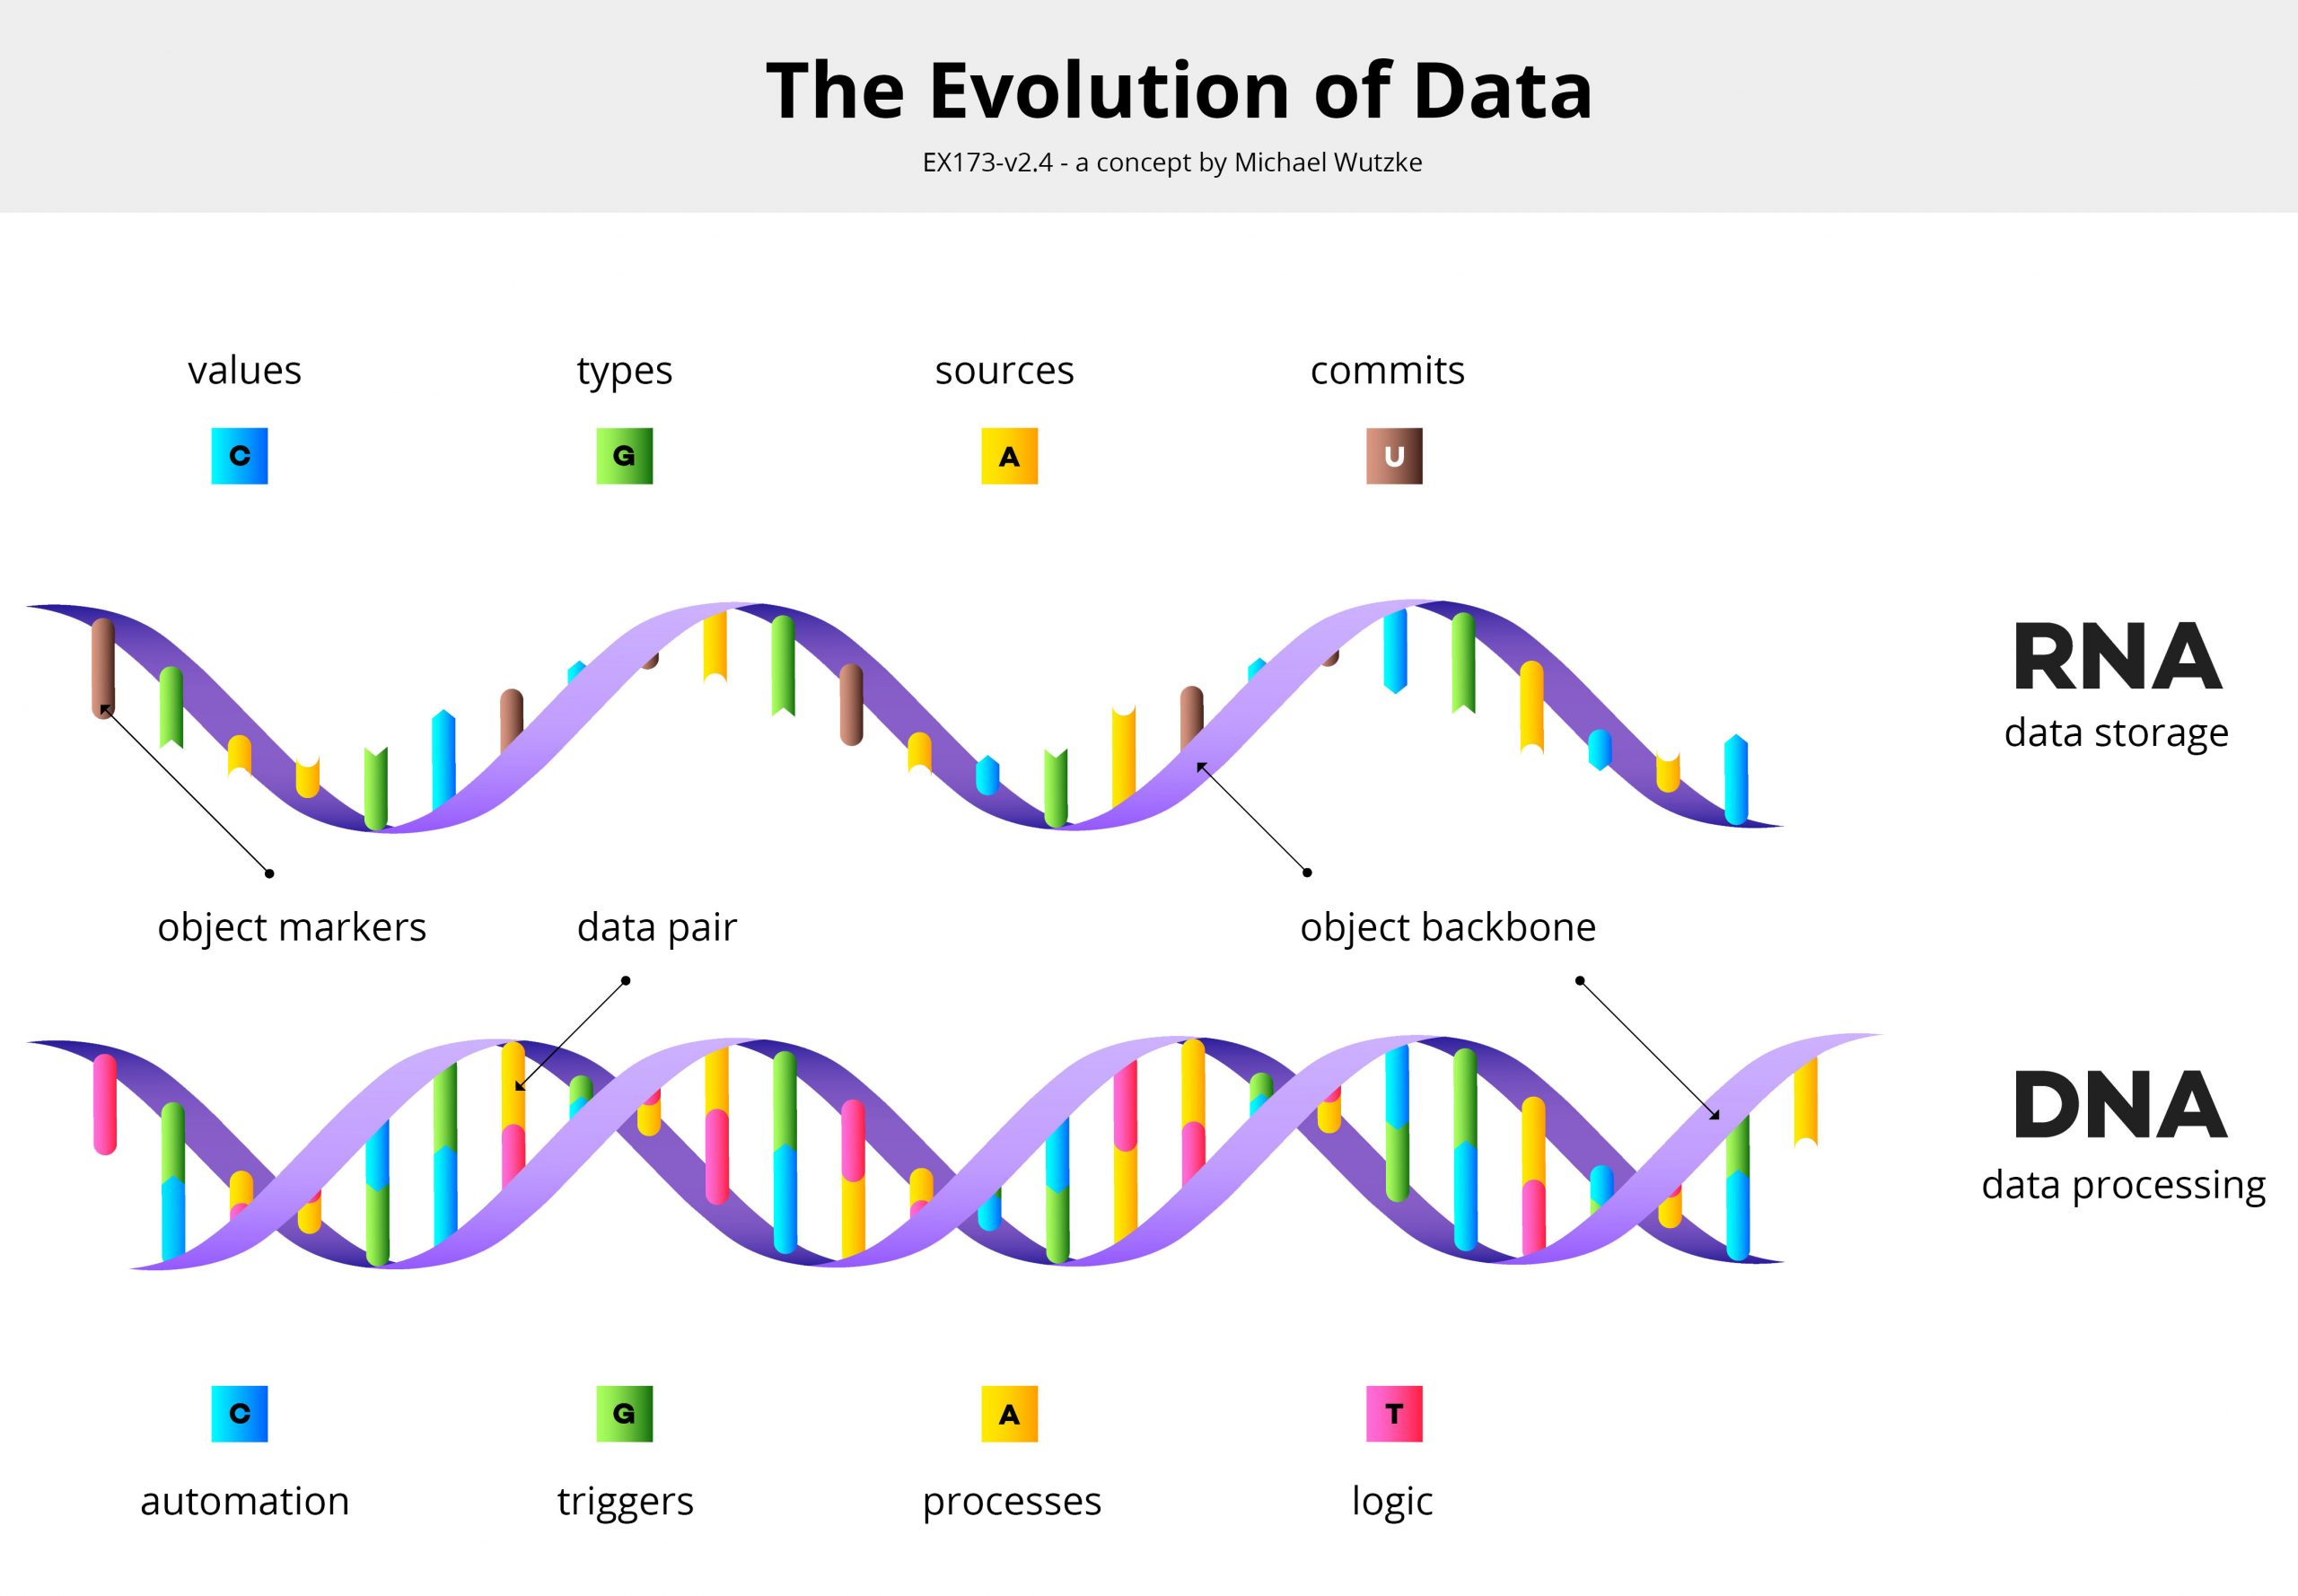 The Evolution of Data - a concept by Michael Wutzke